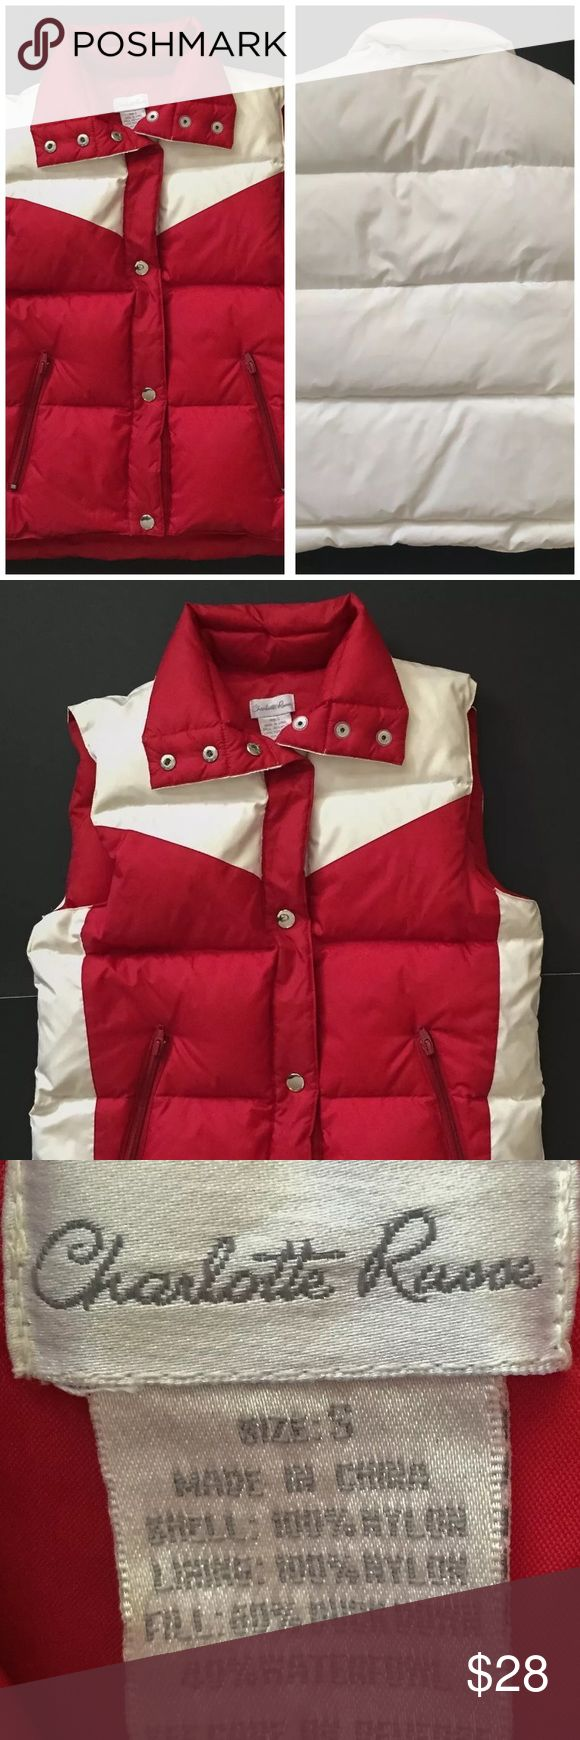 "Charlotte Russe down filled winter vest small Condition: Small spot on back Armpit to armpit: 18.5"" Shoulder to hem: 21.5"" Smoke free, ferret friendly home Charlotte Russe Jackets & Coats Vests"